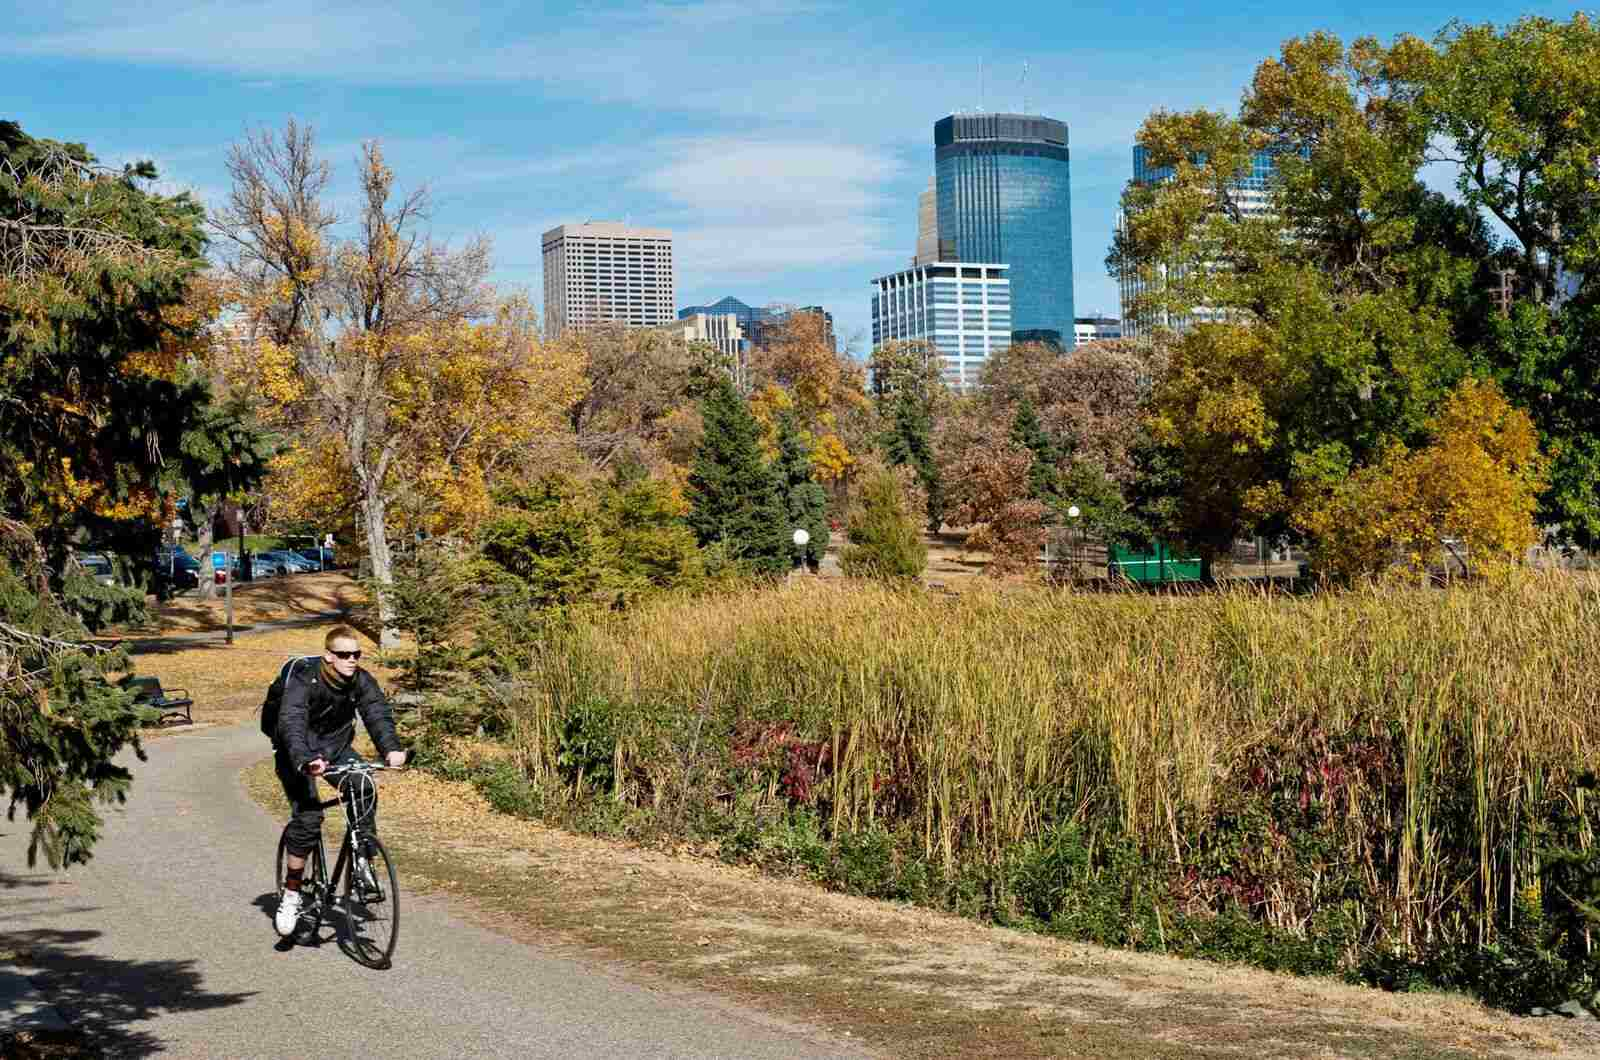 What to Do Near Loring Park in Minneapolis